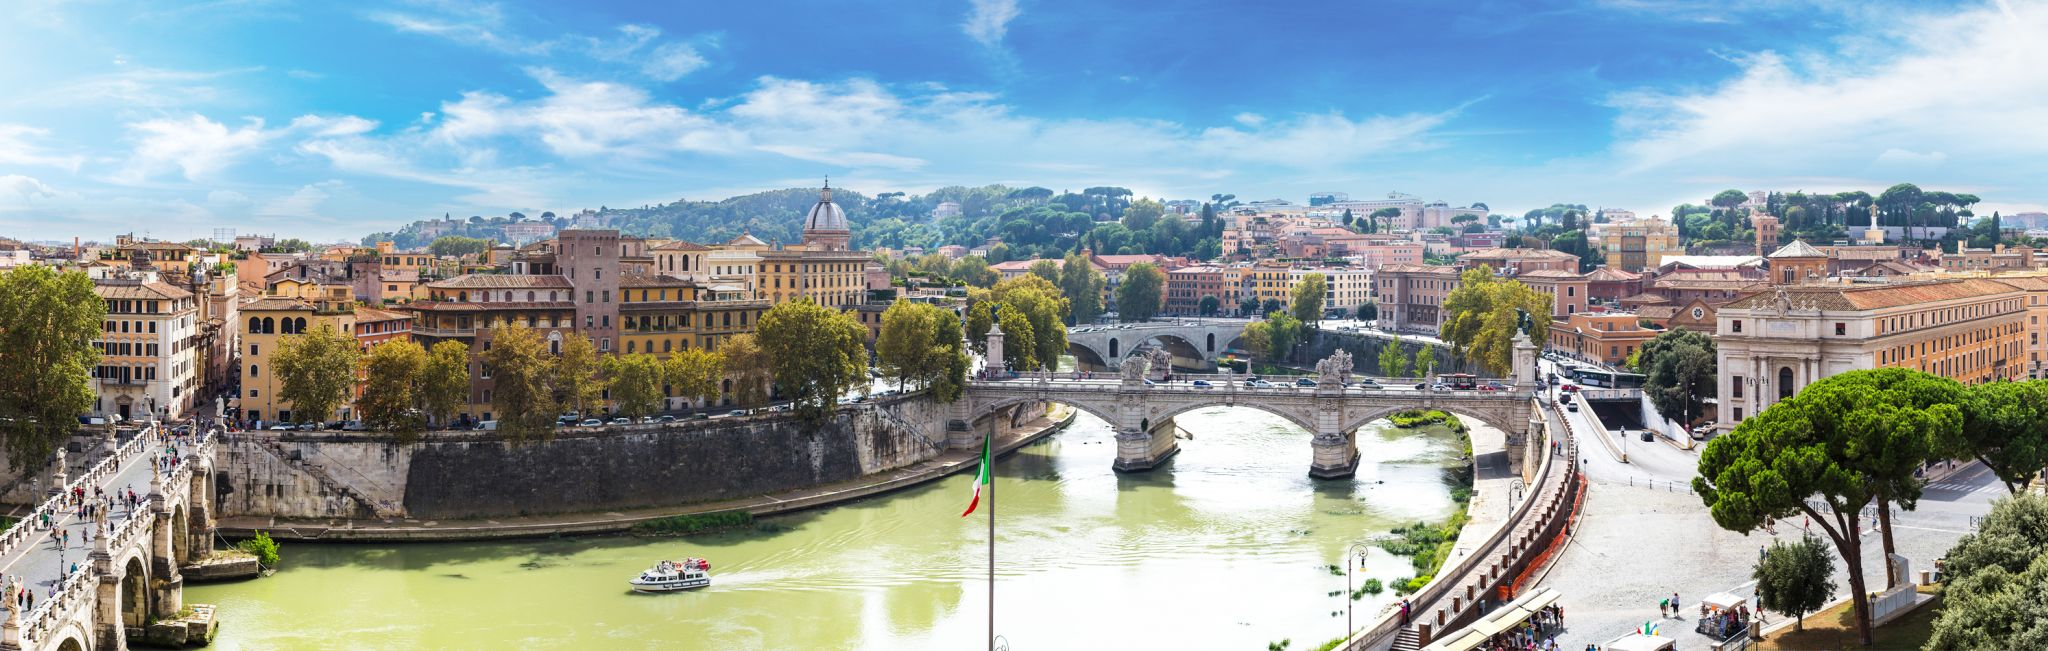 Best Rome Tours and Vacation Packages 2018-2019